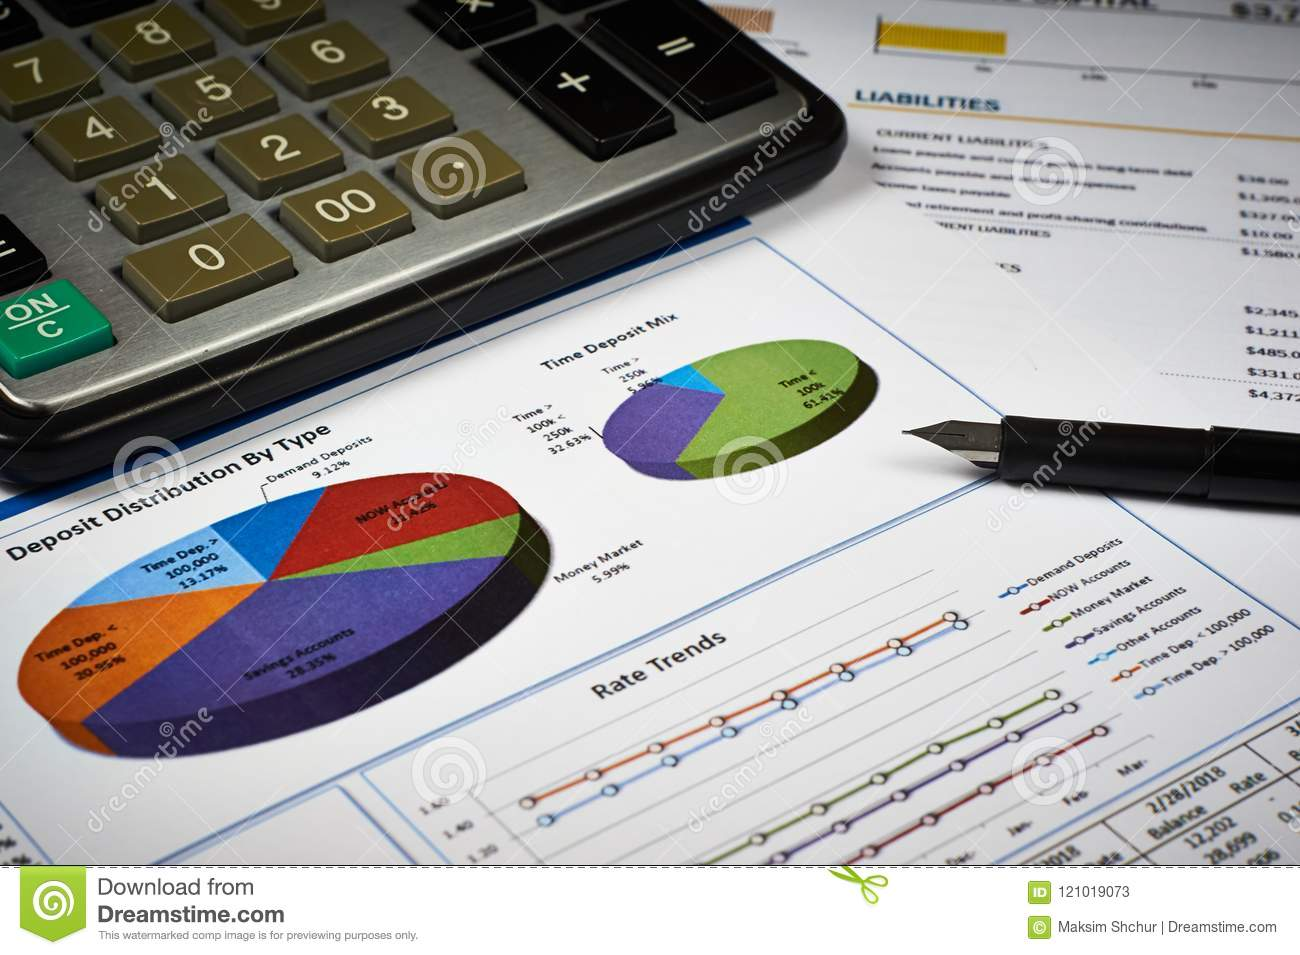 balance sheet and diagram stock image image of accounting 121019073